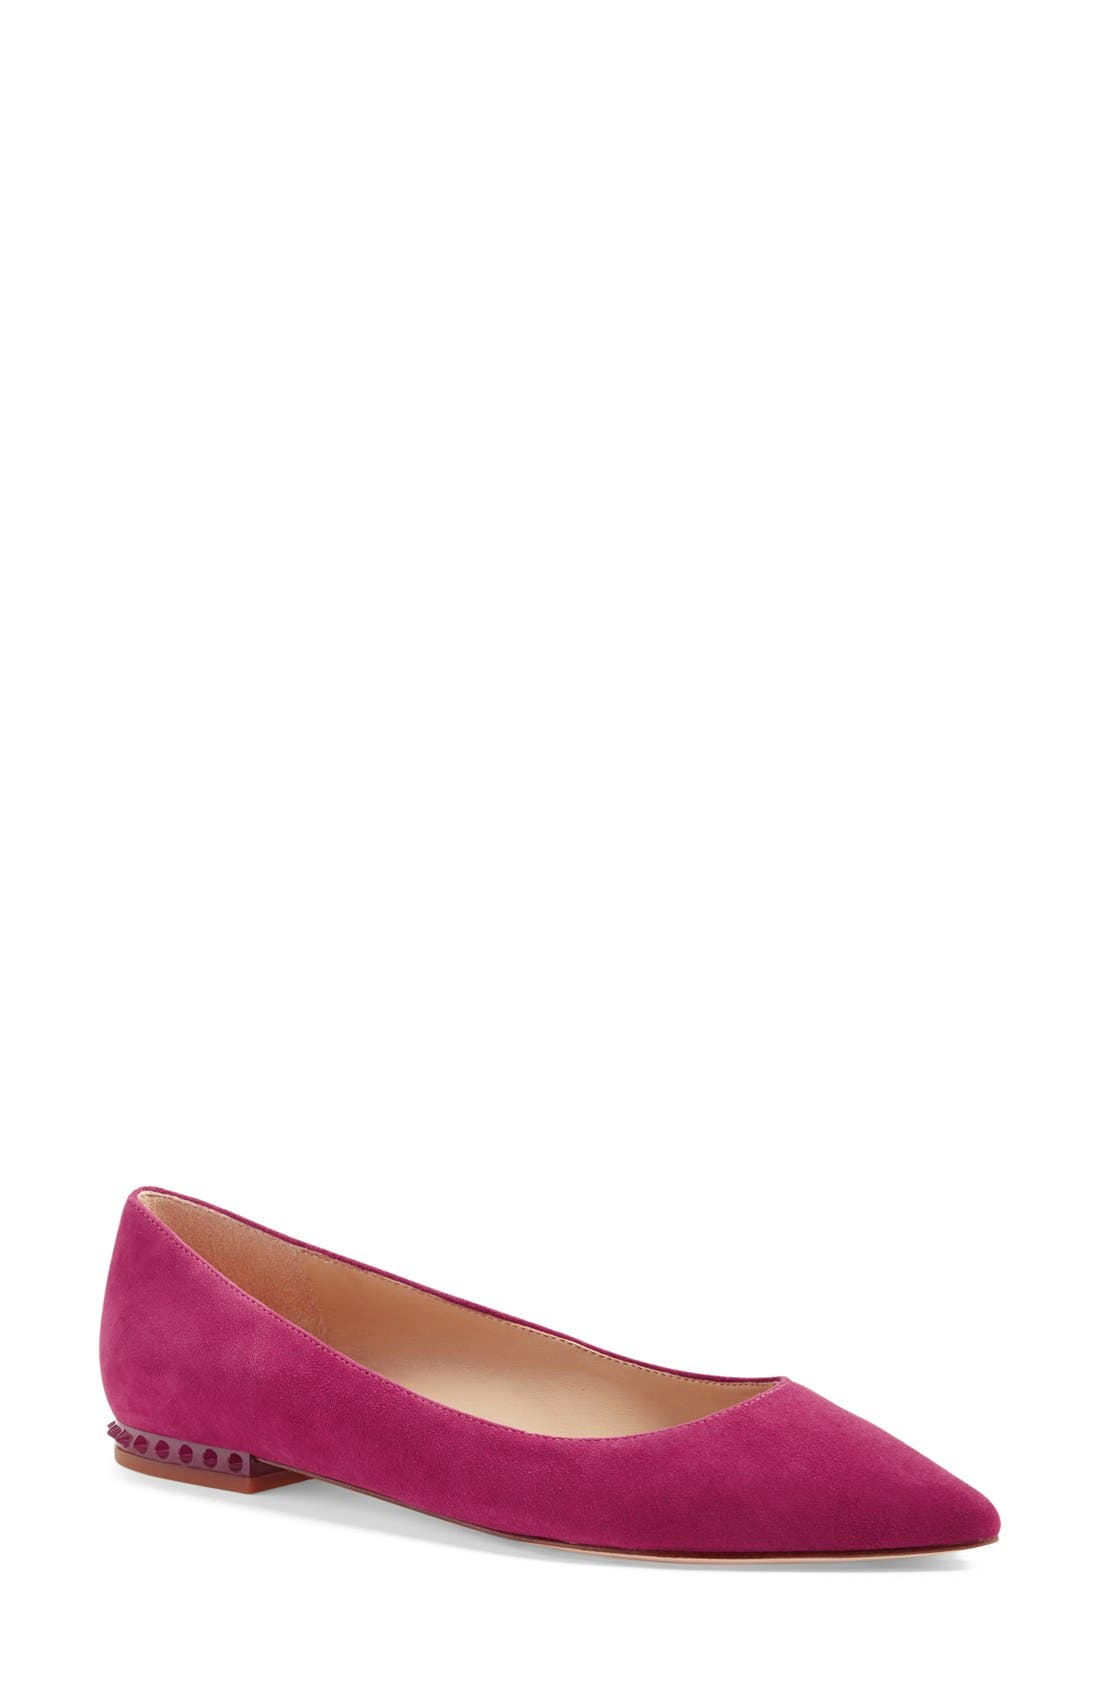 'Reyanne' Spike Rand Pointy Toe Flat,                             Main thumbnail 1, color,                             Pink Garnet Suede